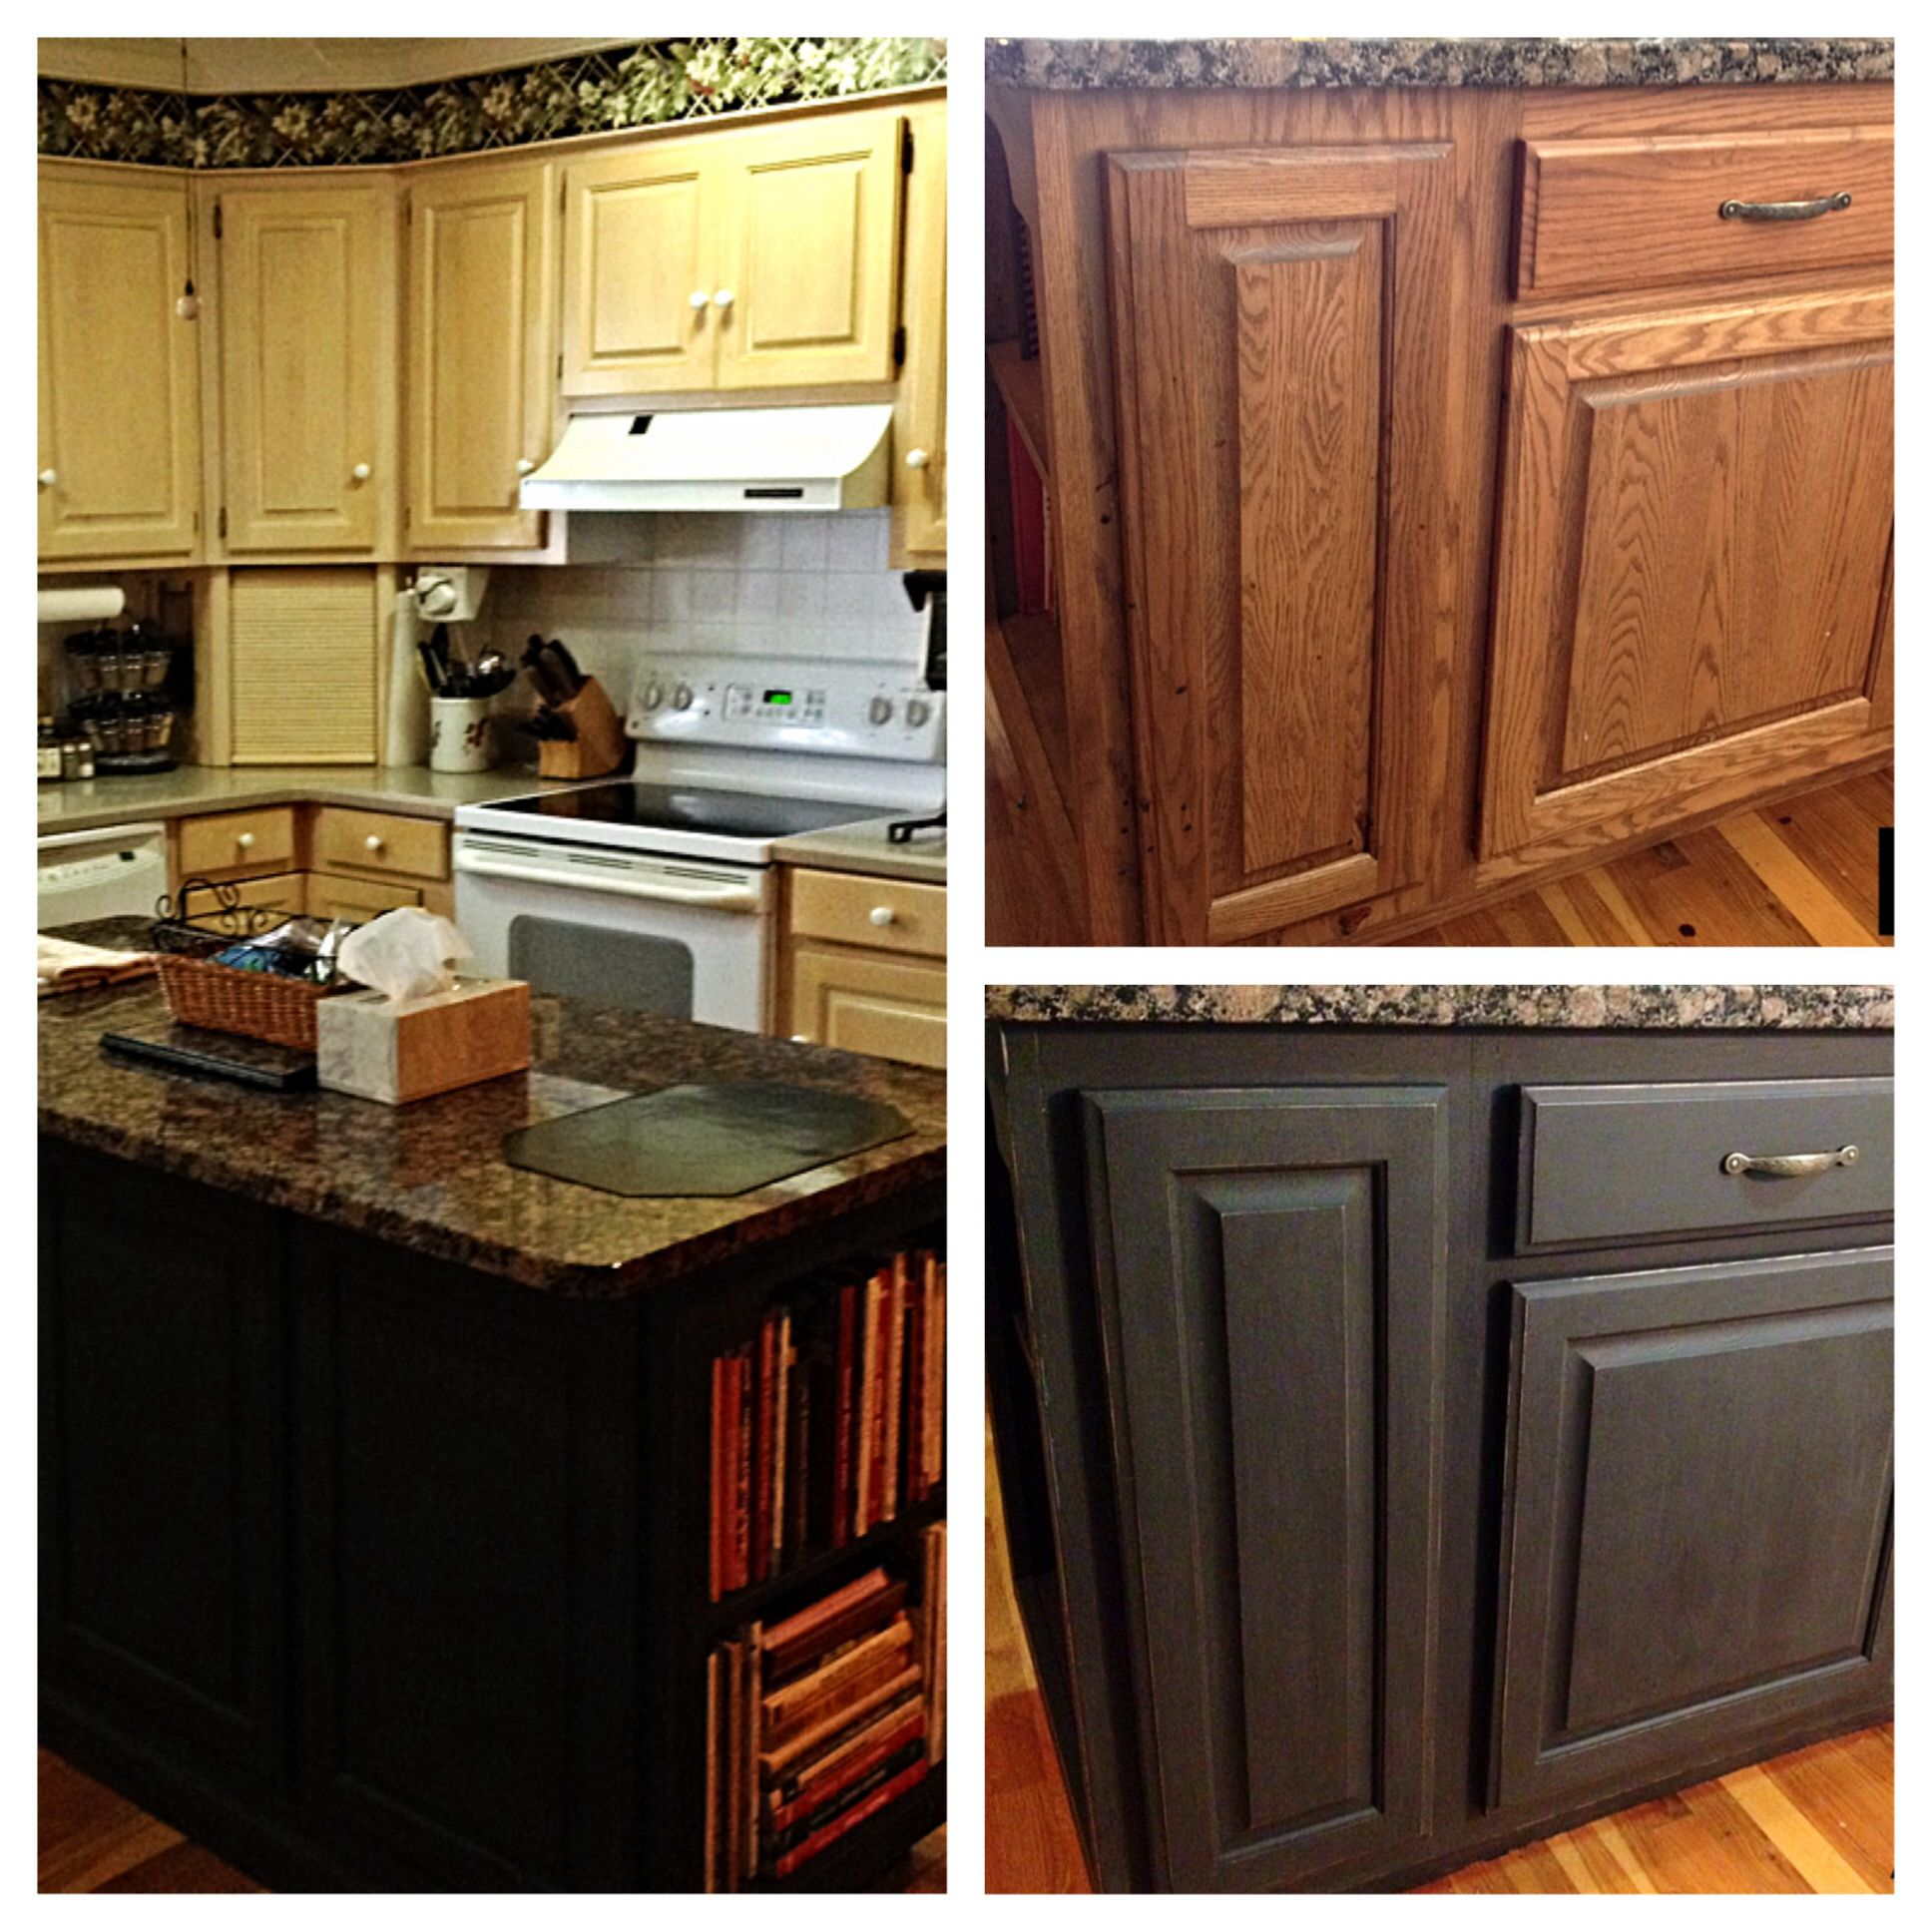 Chalk Painted The Kitchen Island Made My Own Chalk Paint Using